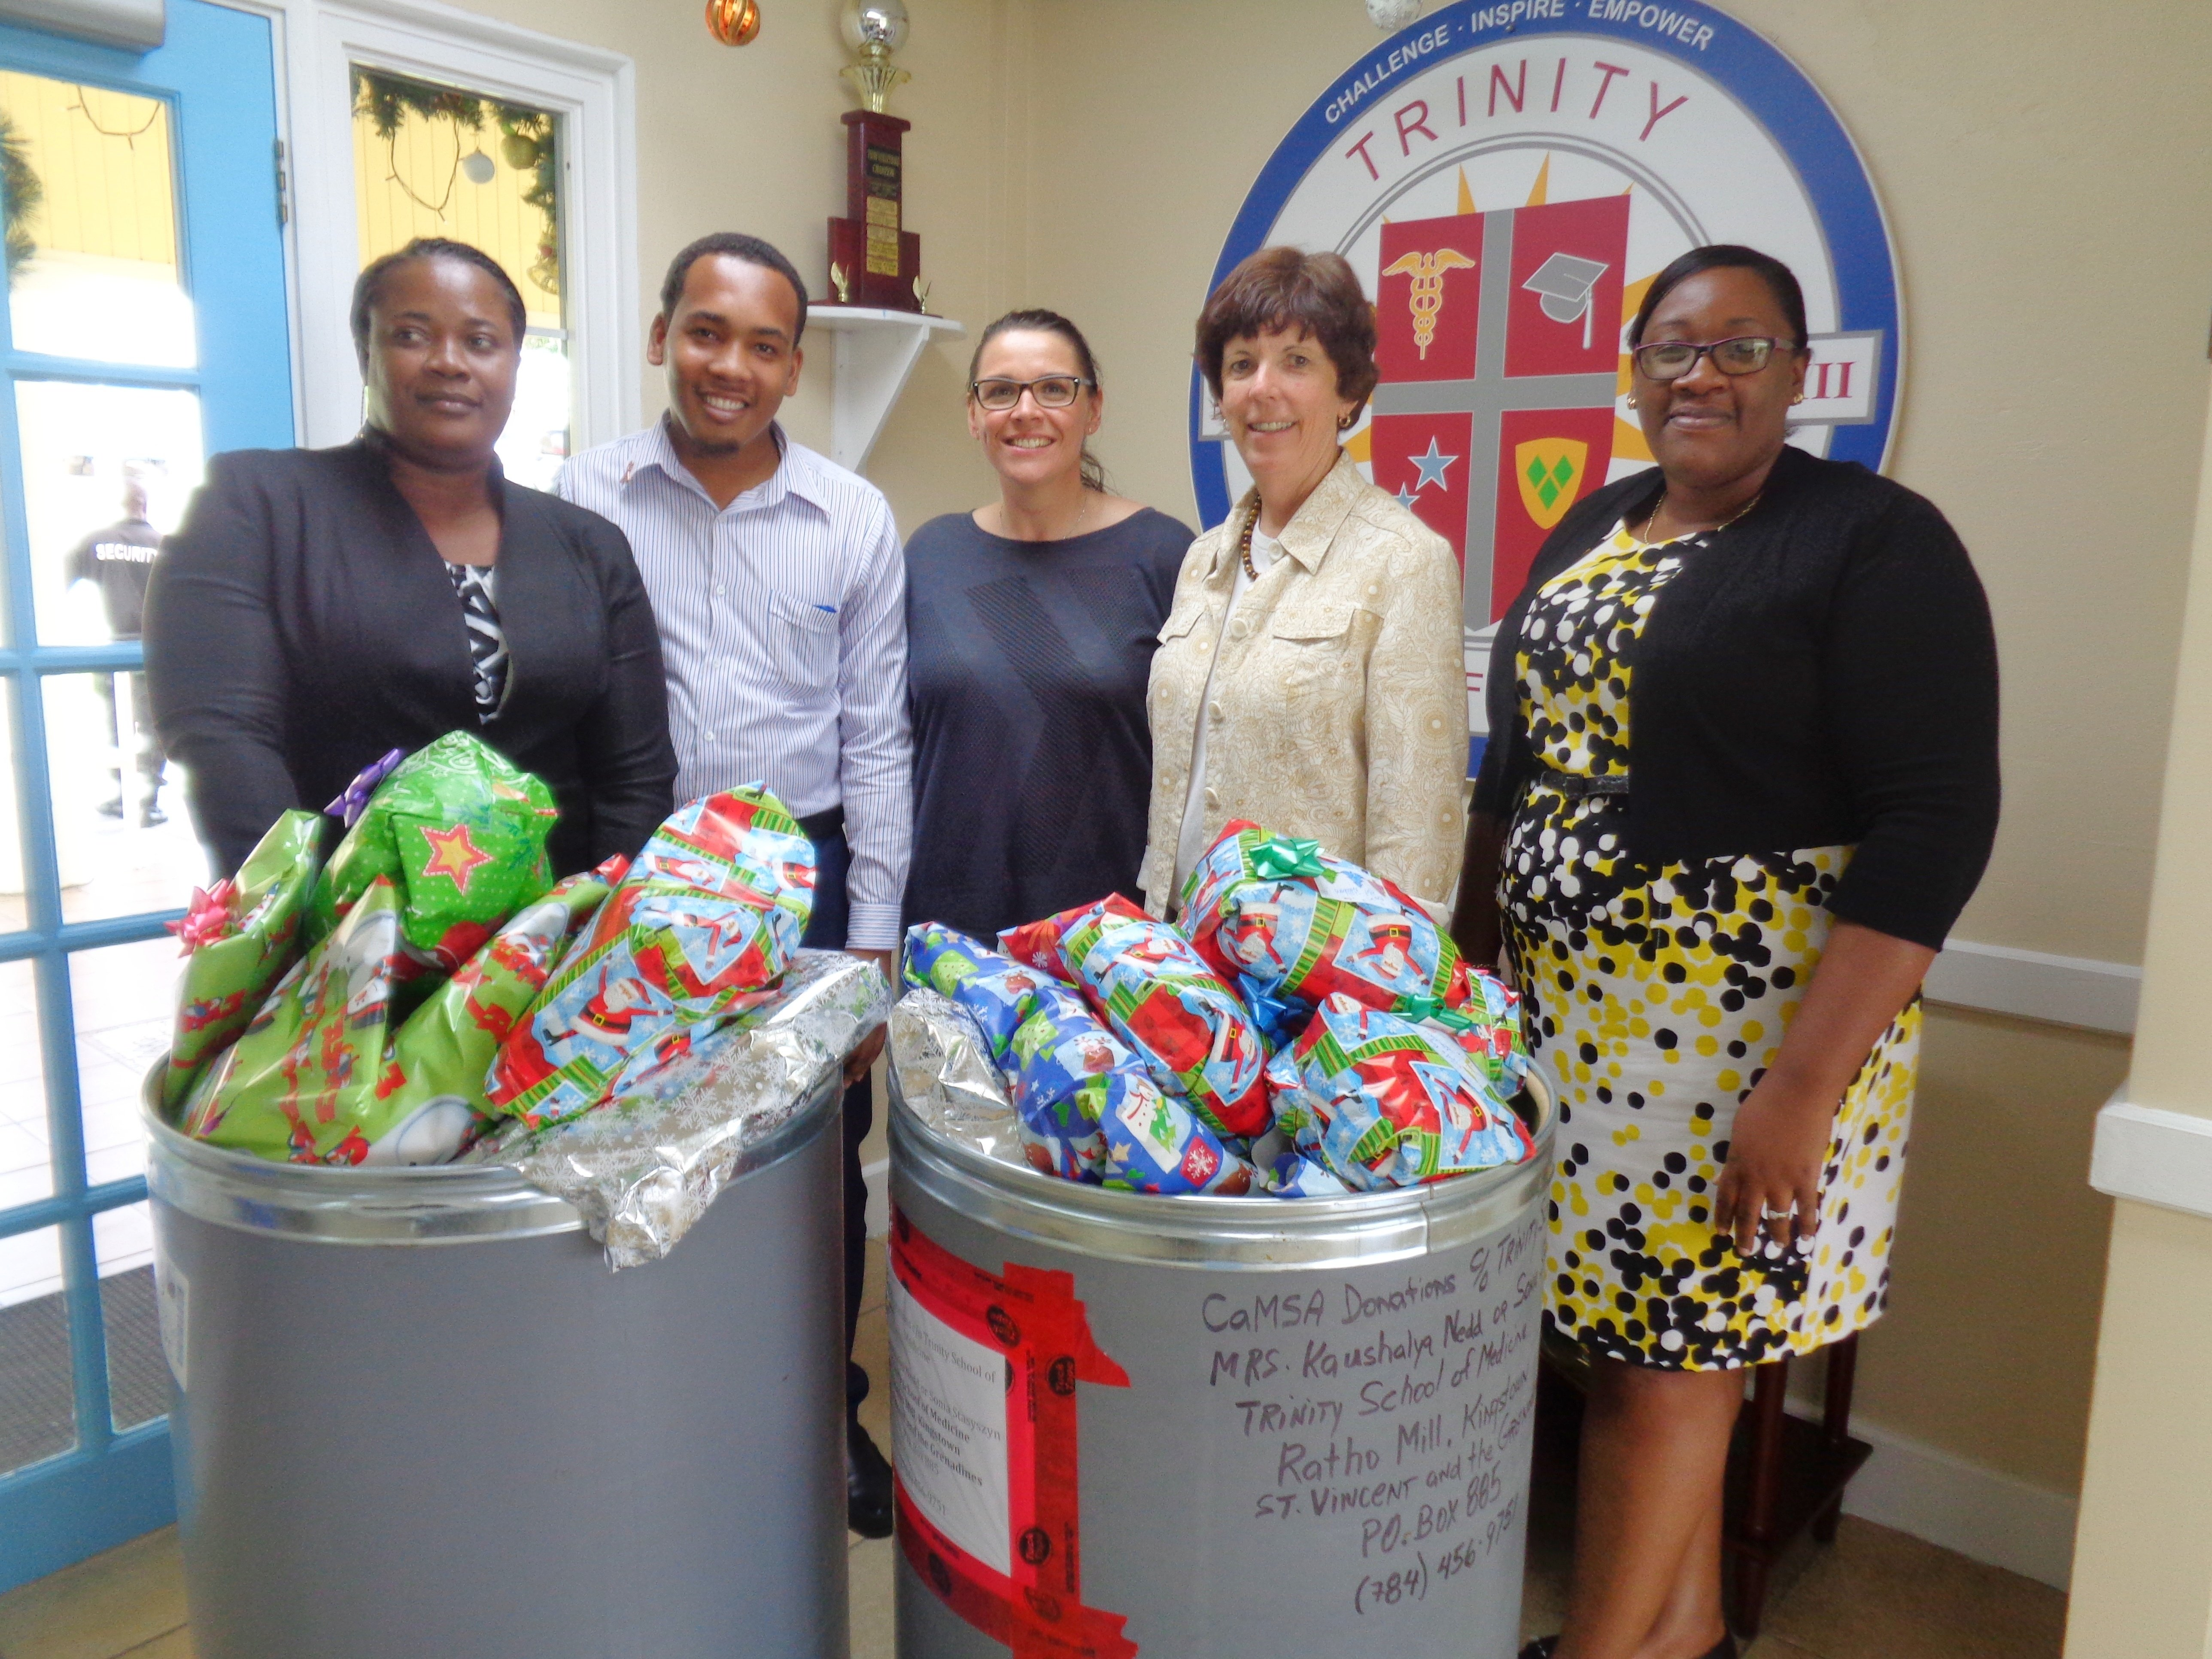 Trinity School of Medicine's SMS and AMSA Groups Collaborate on Holiday Gift Drive for Vincentian Causes